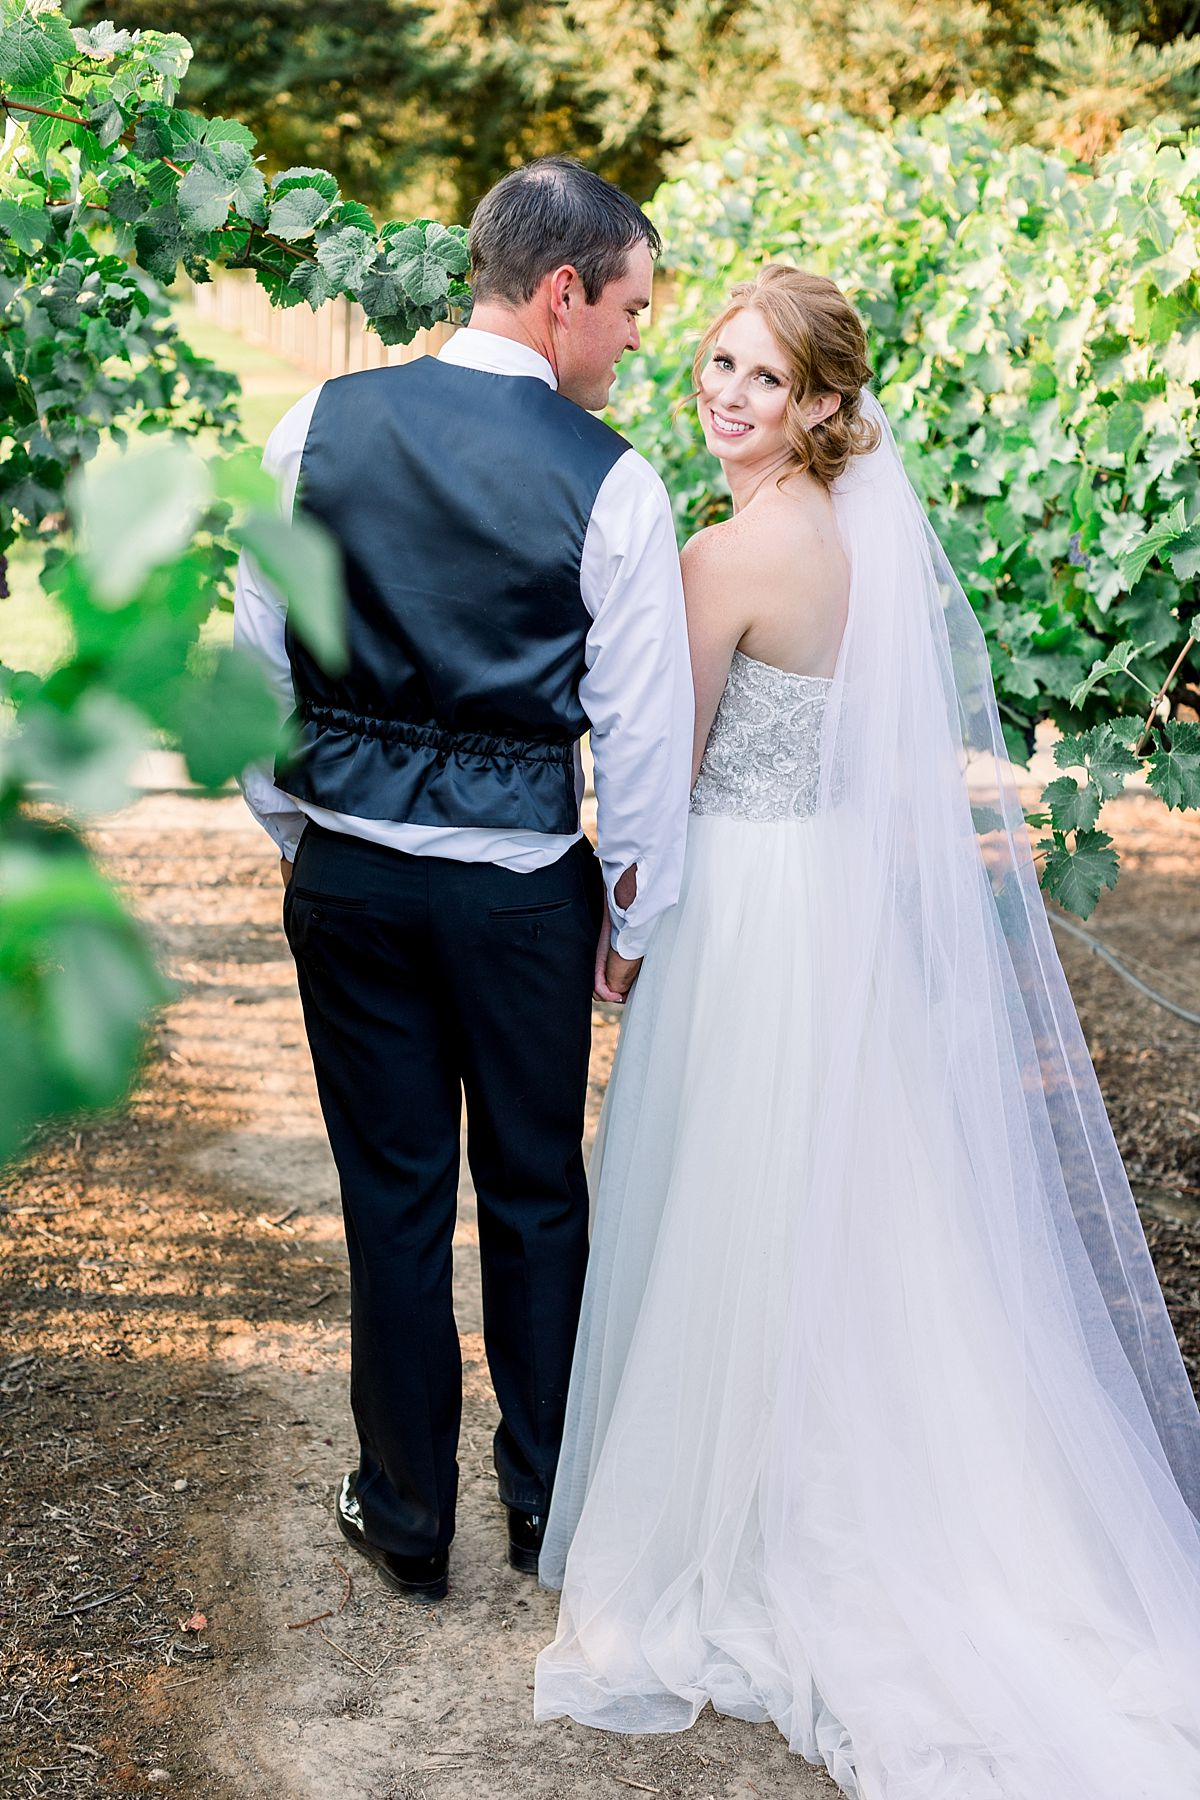 Wine and Roses Wedding - Wine and Roses Lodi Wedding Photographer - Sacramento Film Wedding Photographer - Ashley Baumgartner - Sacramento Luxury Wedding Photographer_0045.jpg